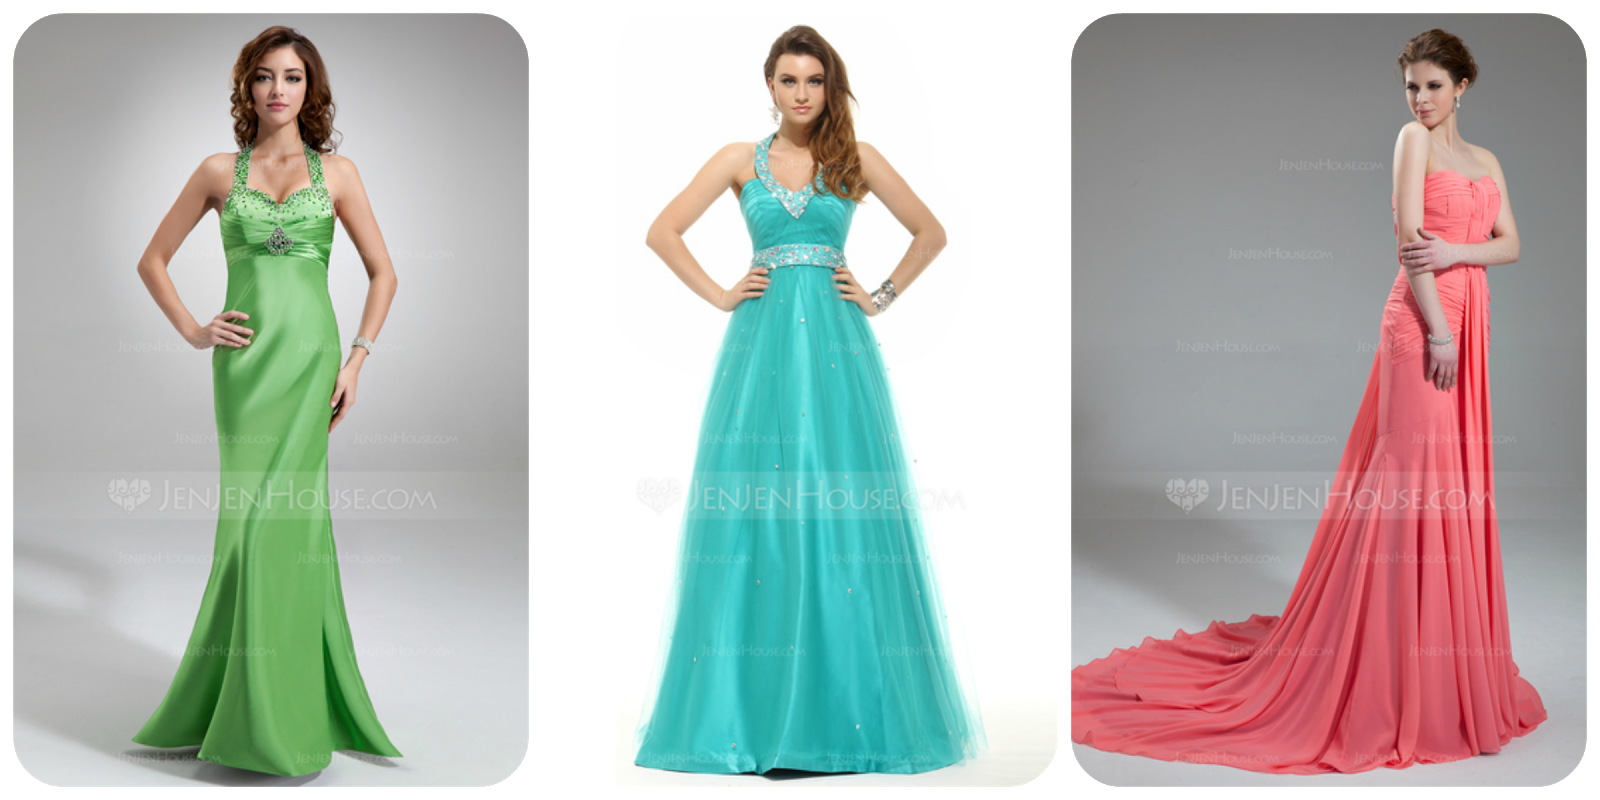 Places to buy homecoming dresses near me